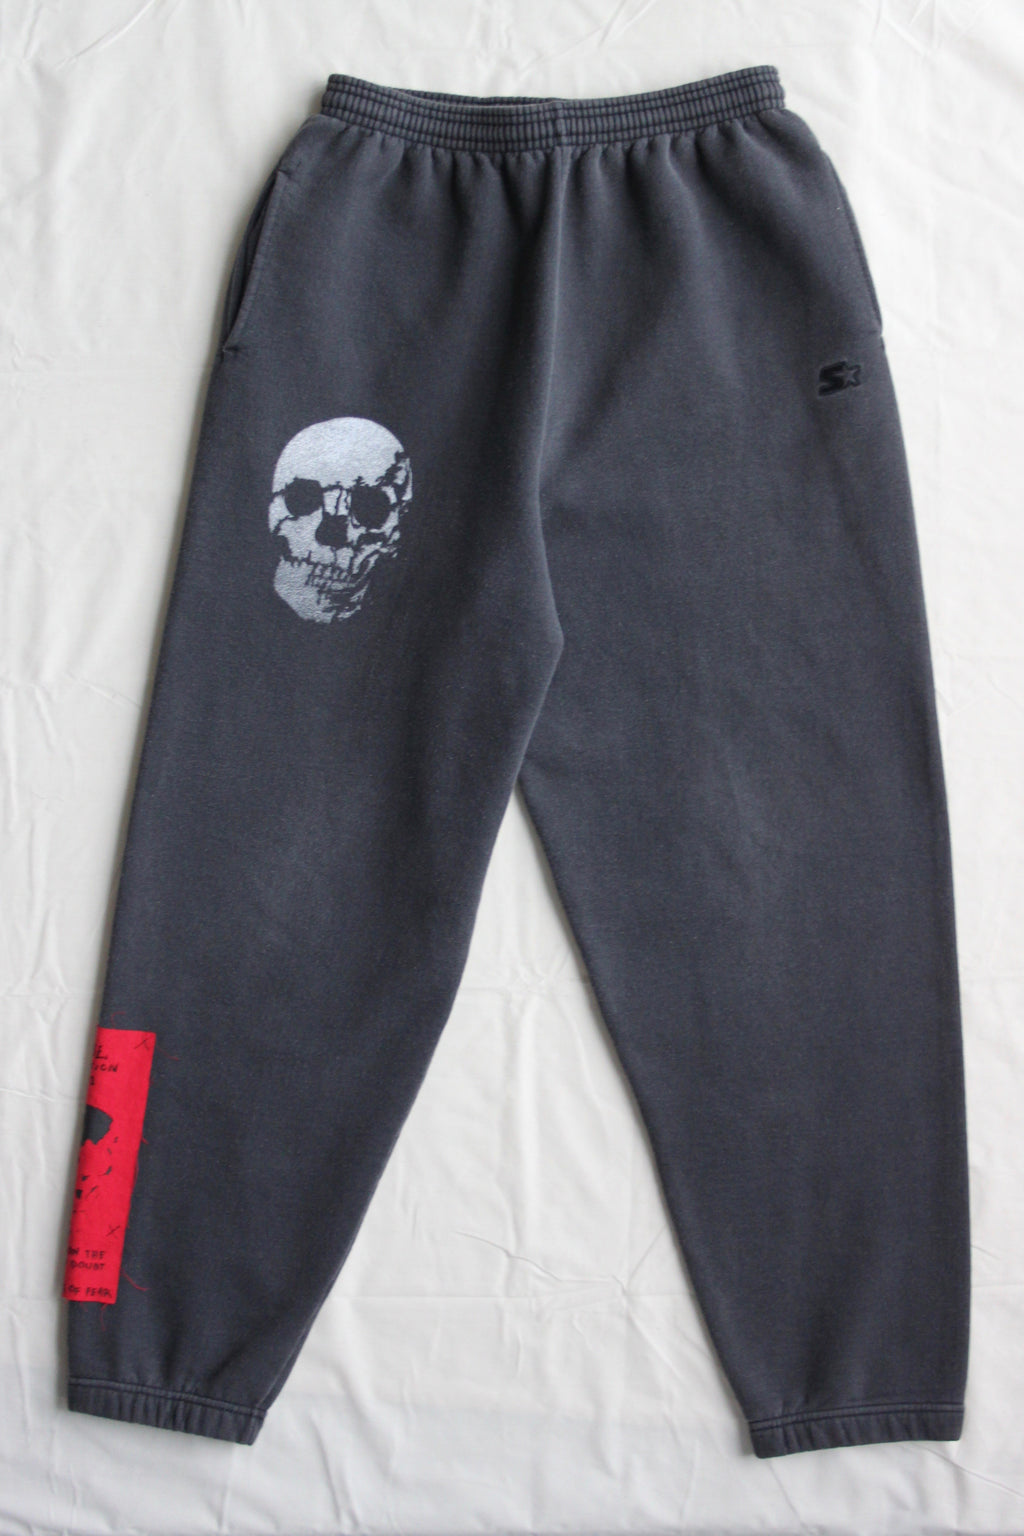 WSL Customized Vintage Starter Sweatpants